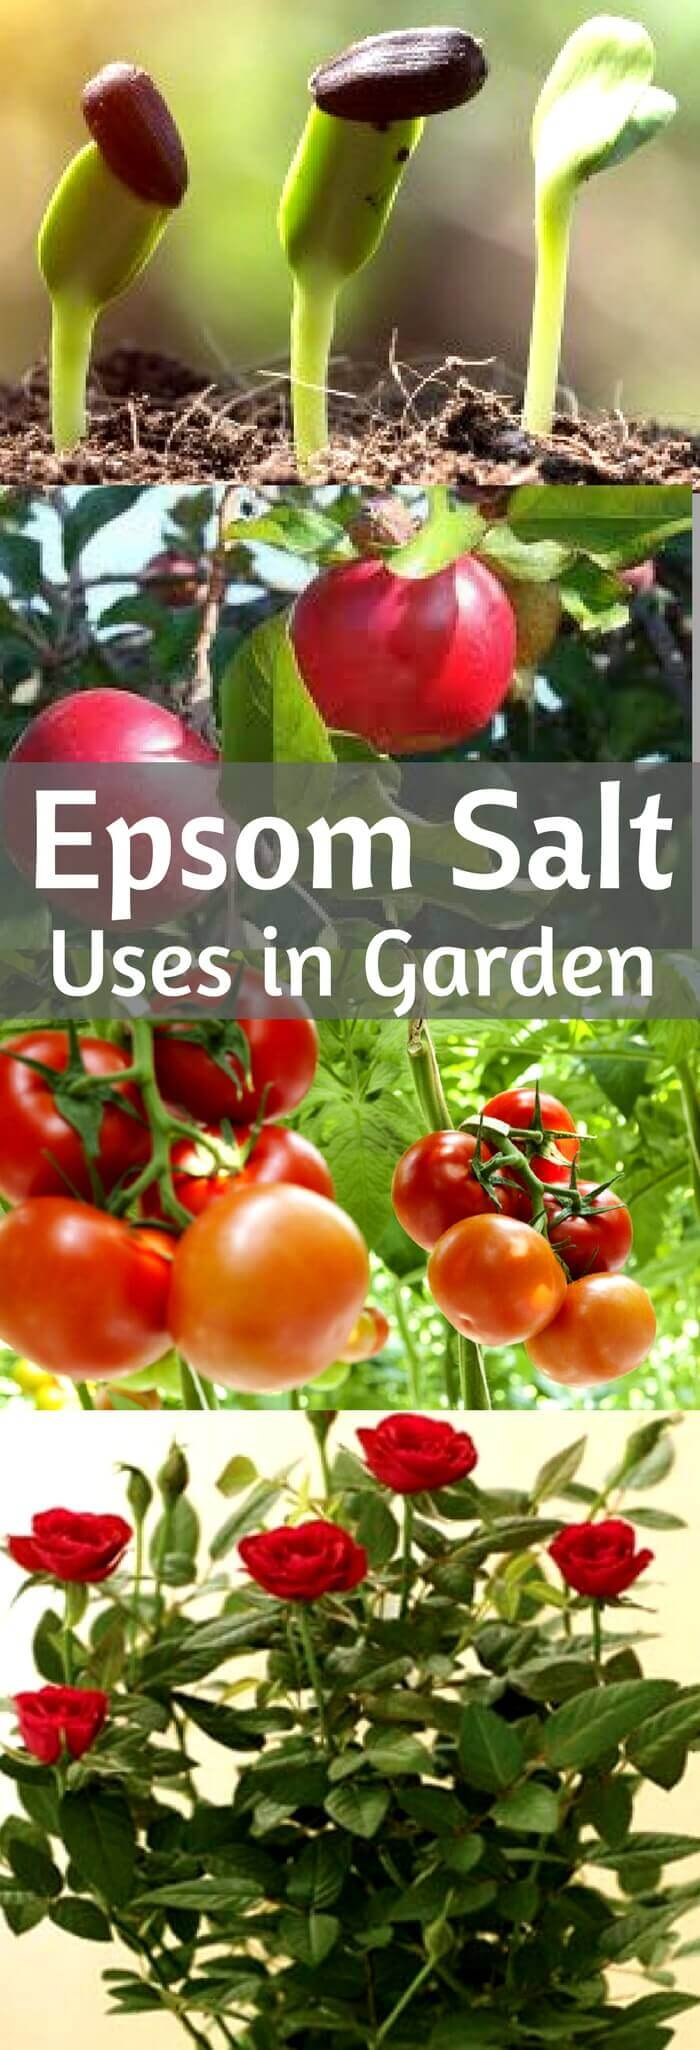 Epsom Salt uses in Garden